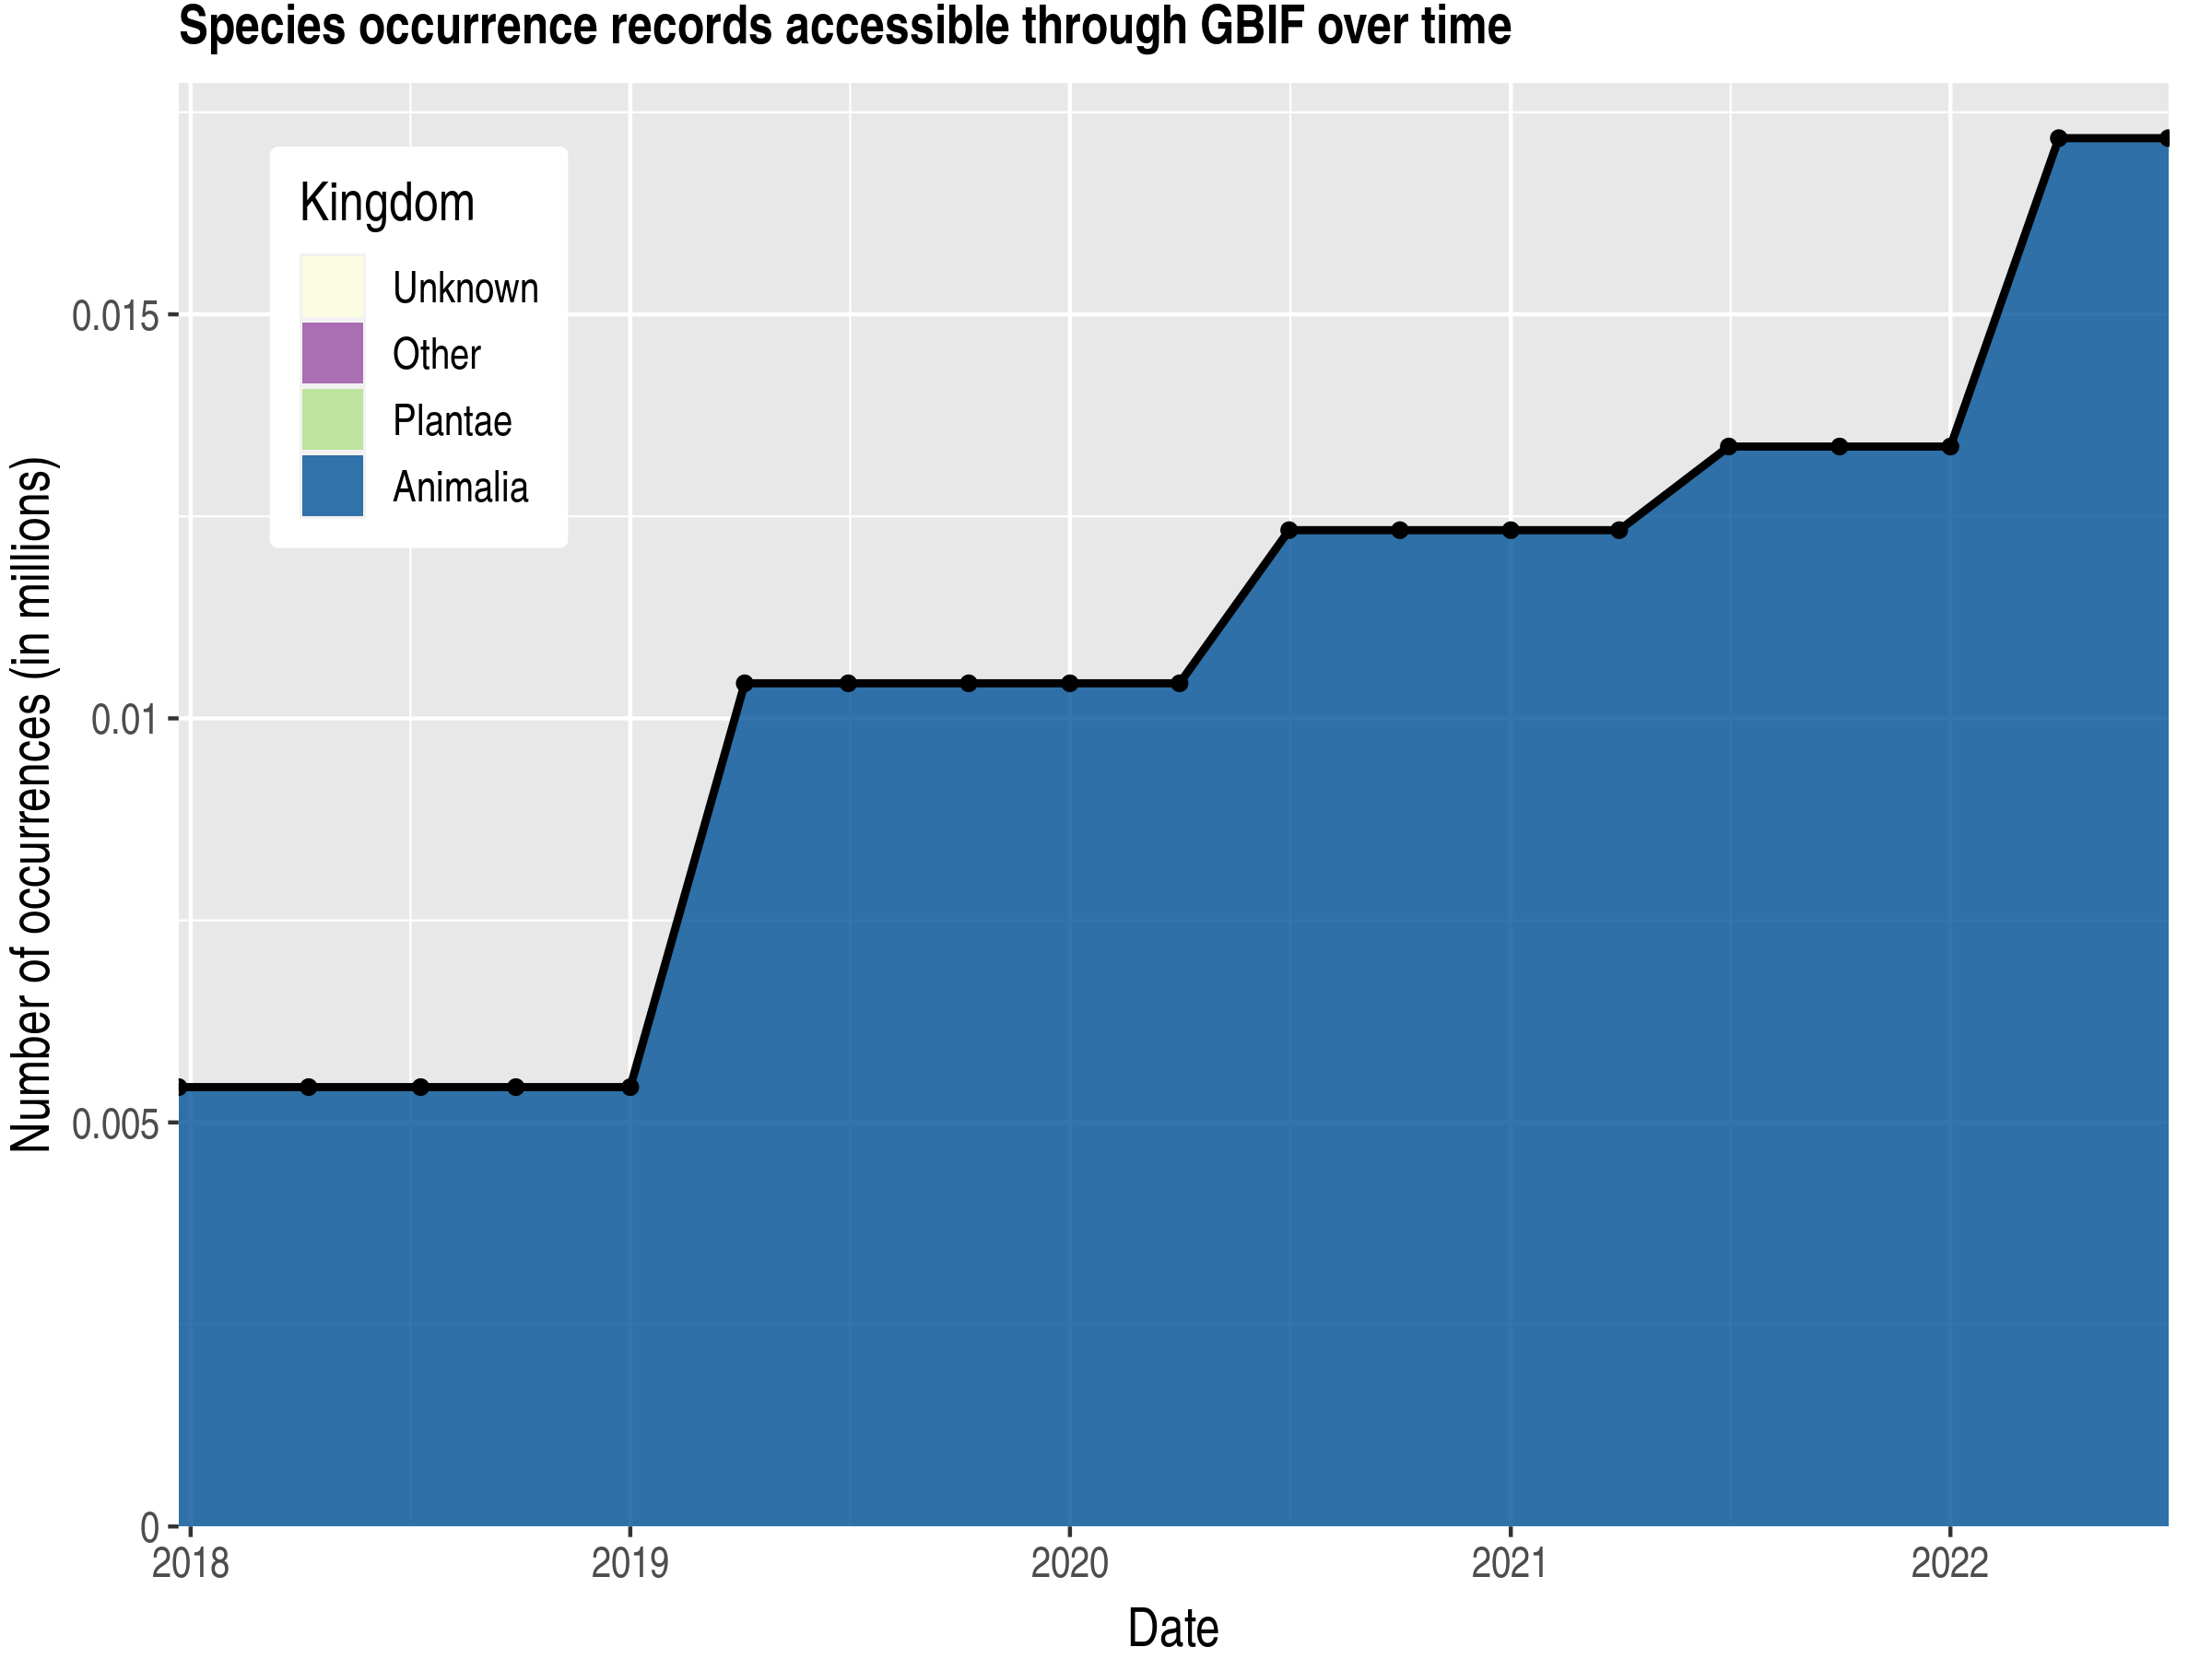 Data trend of records by kingdom published by Saint Kitts and Nevis